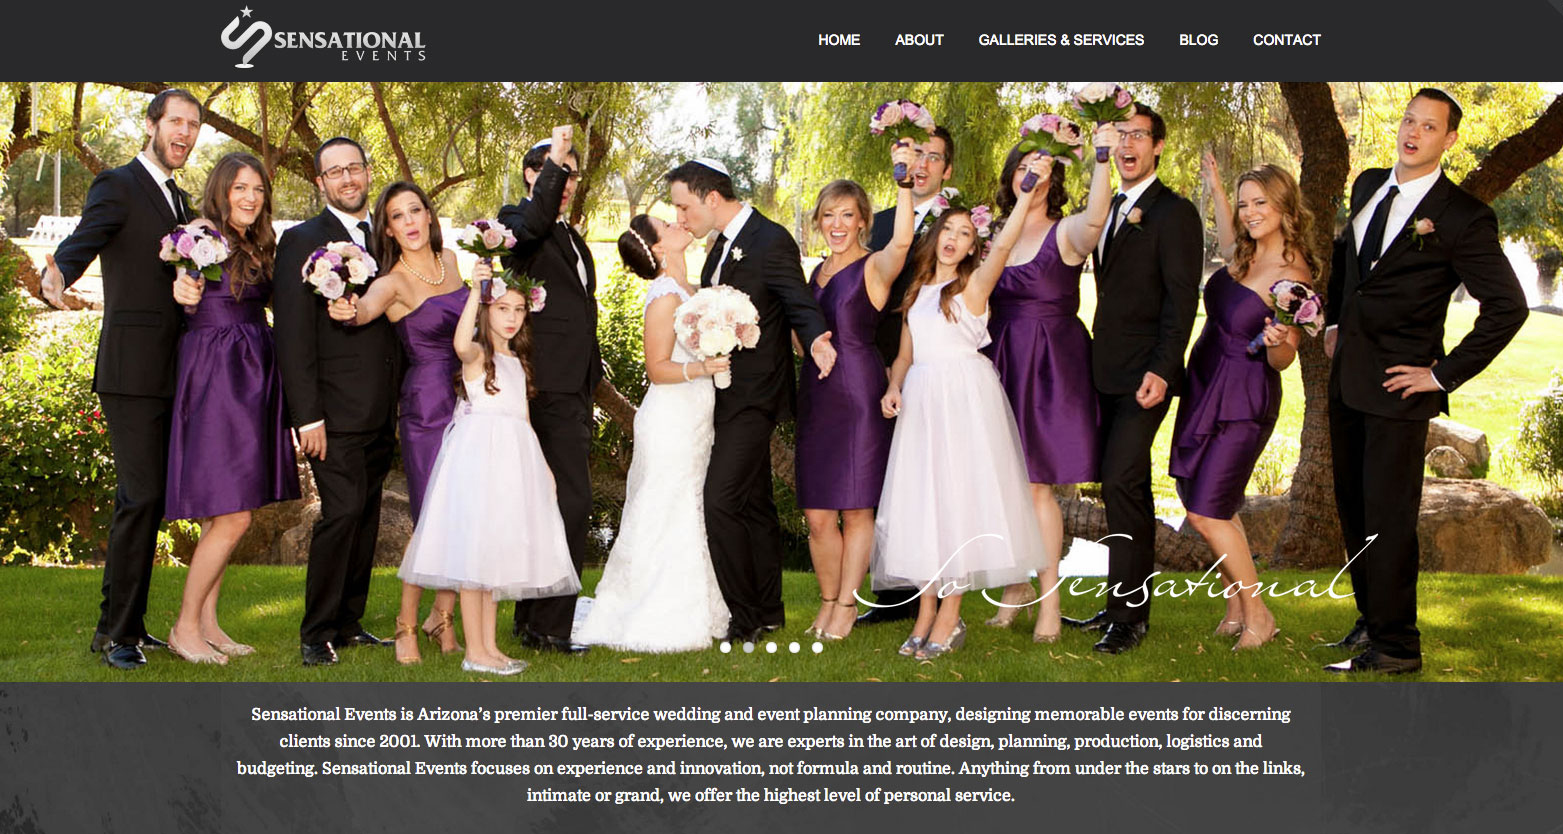 Sensational events celebrates th anniversary with new website